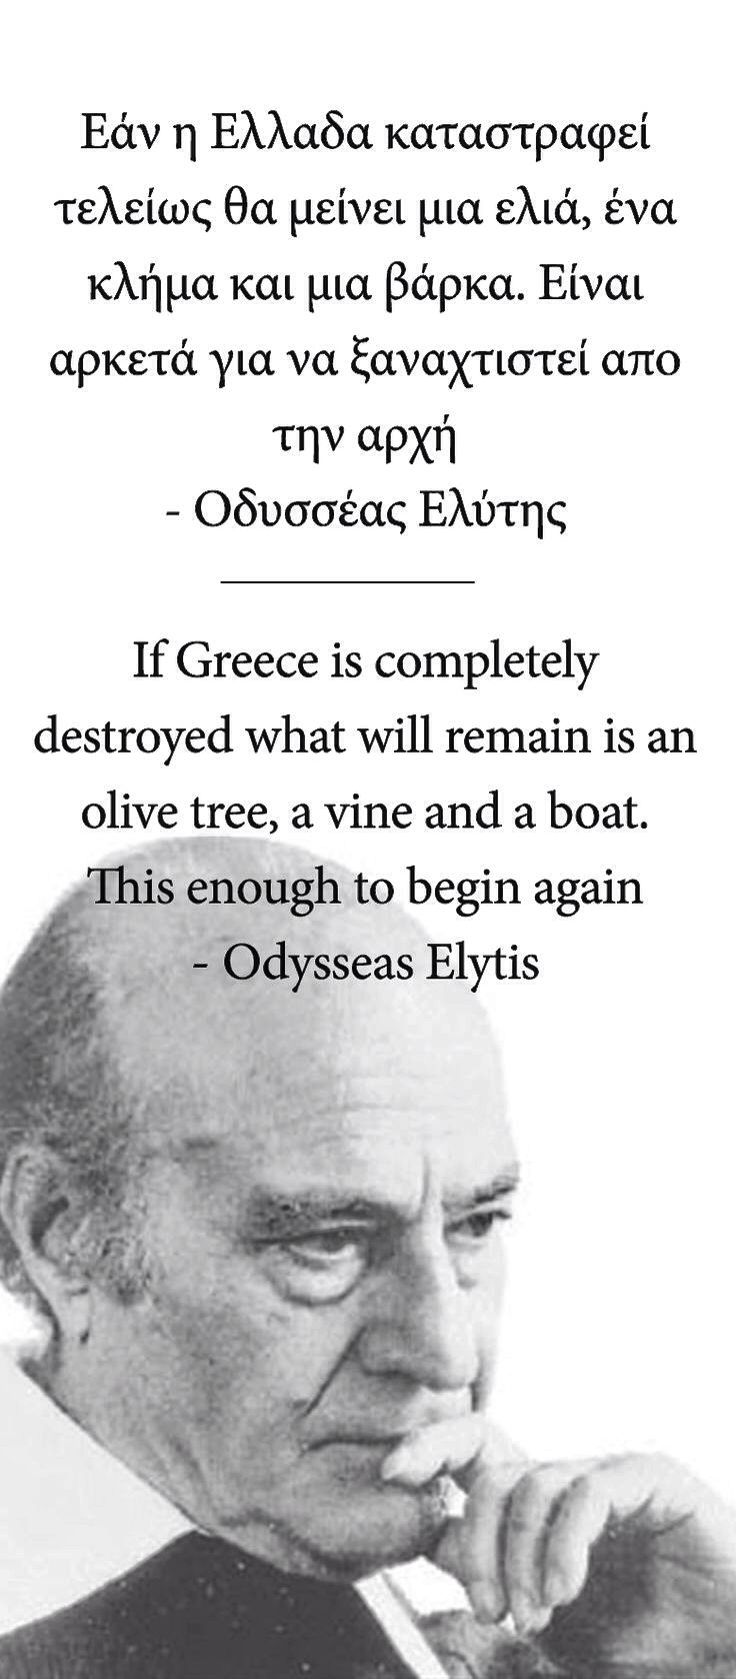 If Greece is complitely destroyed what will remain is an olive tree ,a vine and a boat. This enough to begin again _ Odysseas Elytis  Εάν η Ελλάδα καταστραφεί τελείως θα μείνει μια ελιά, ένα  κλήμα και μια βάρκα. Είναι αρκετά για να ξαναχτιστεί απο την αρχή _ Οδυσσέας Ελύτης